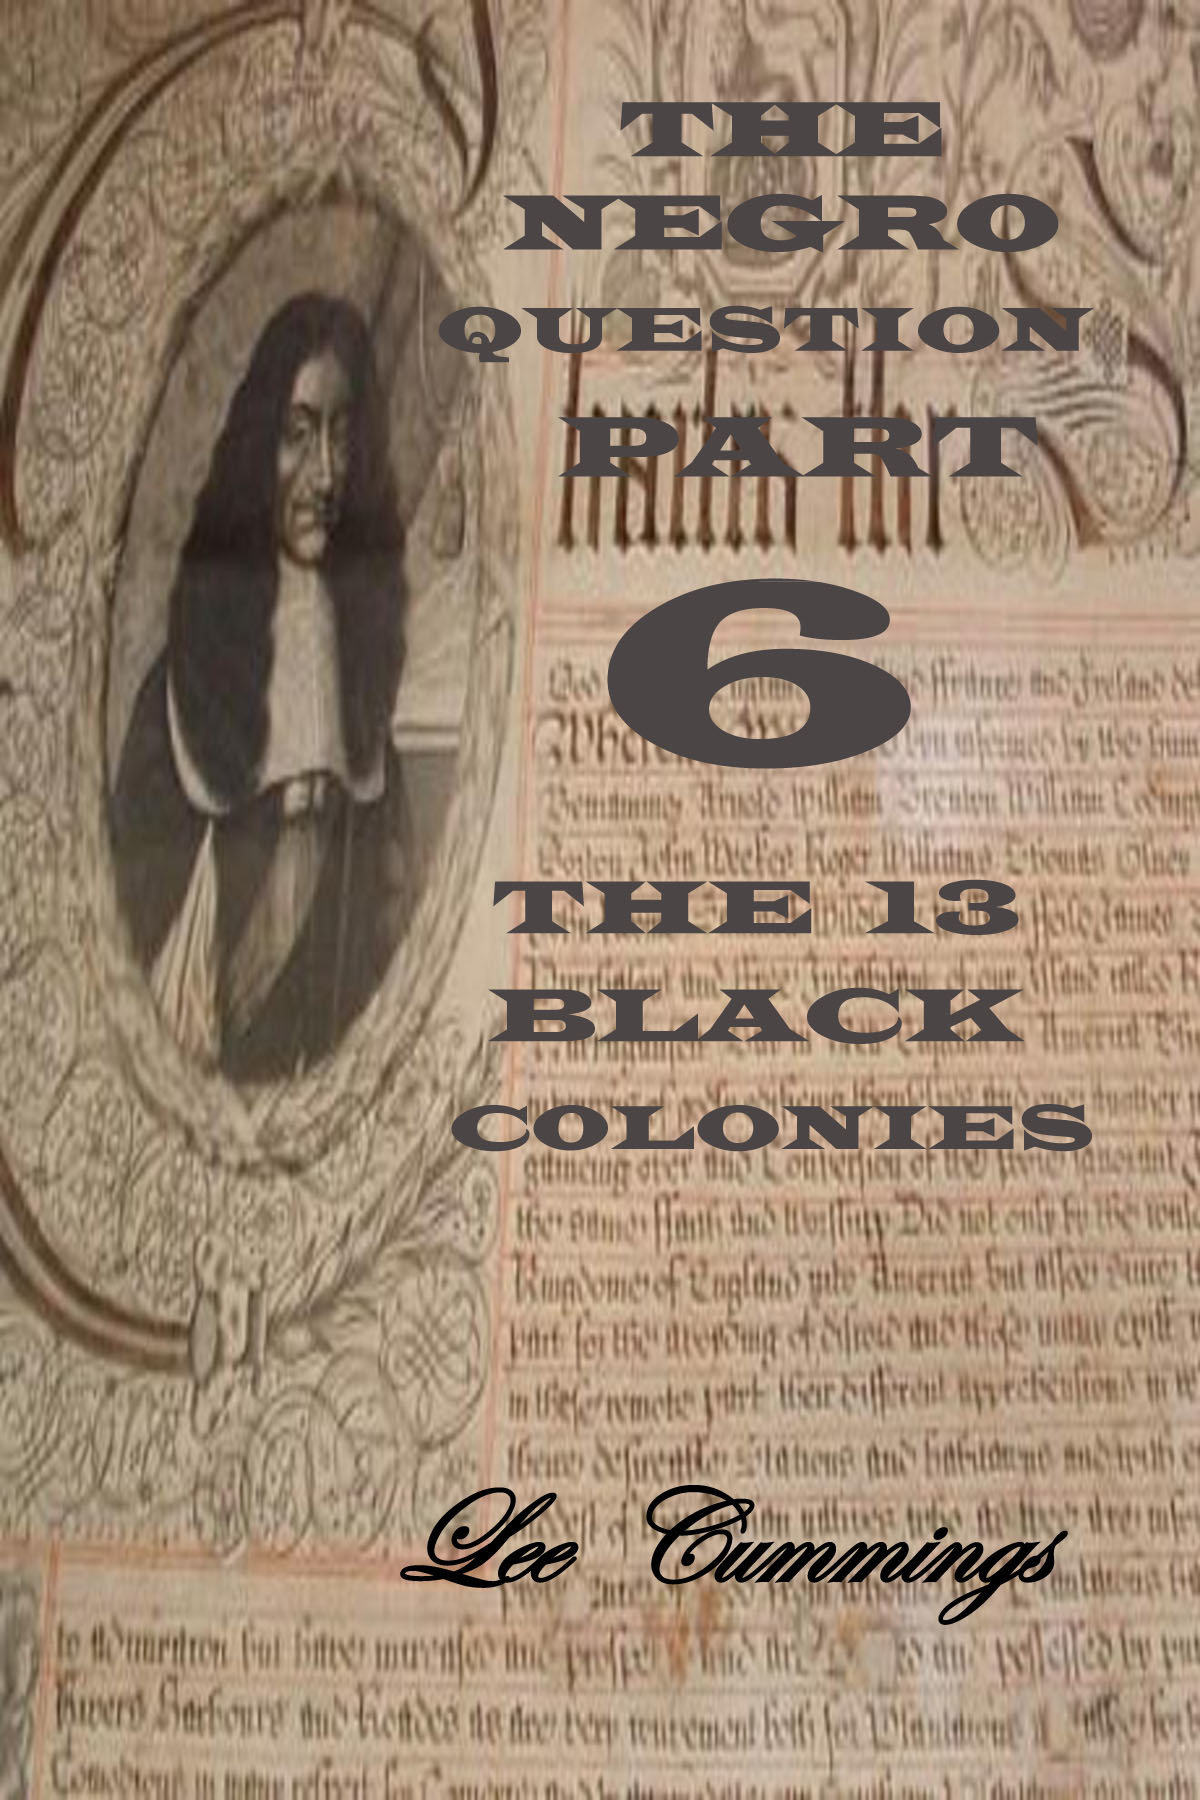 THE NEGRO QUESTION PART 6, THE 13 BLACK COLONIES 00005